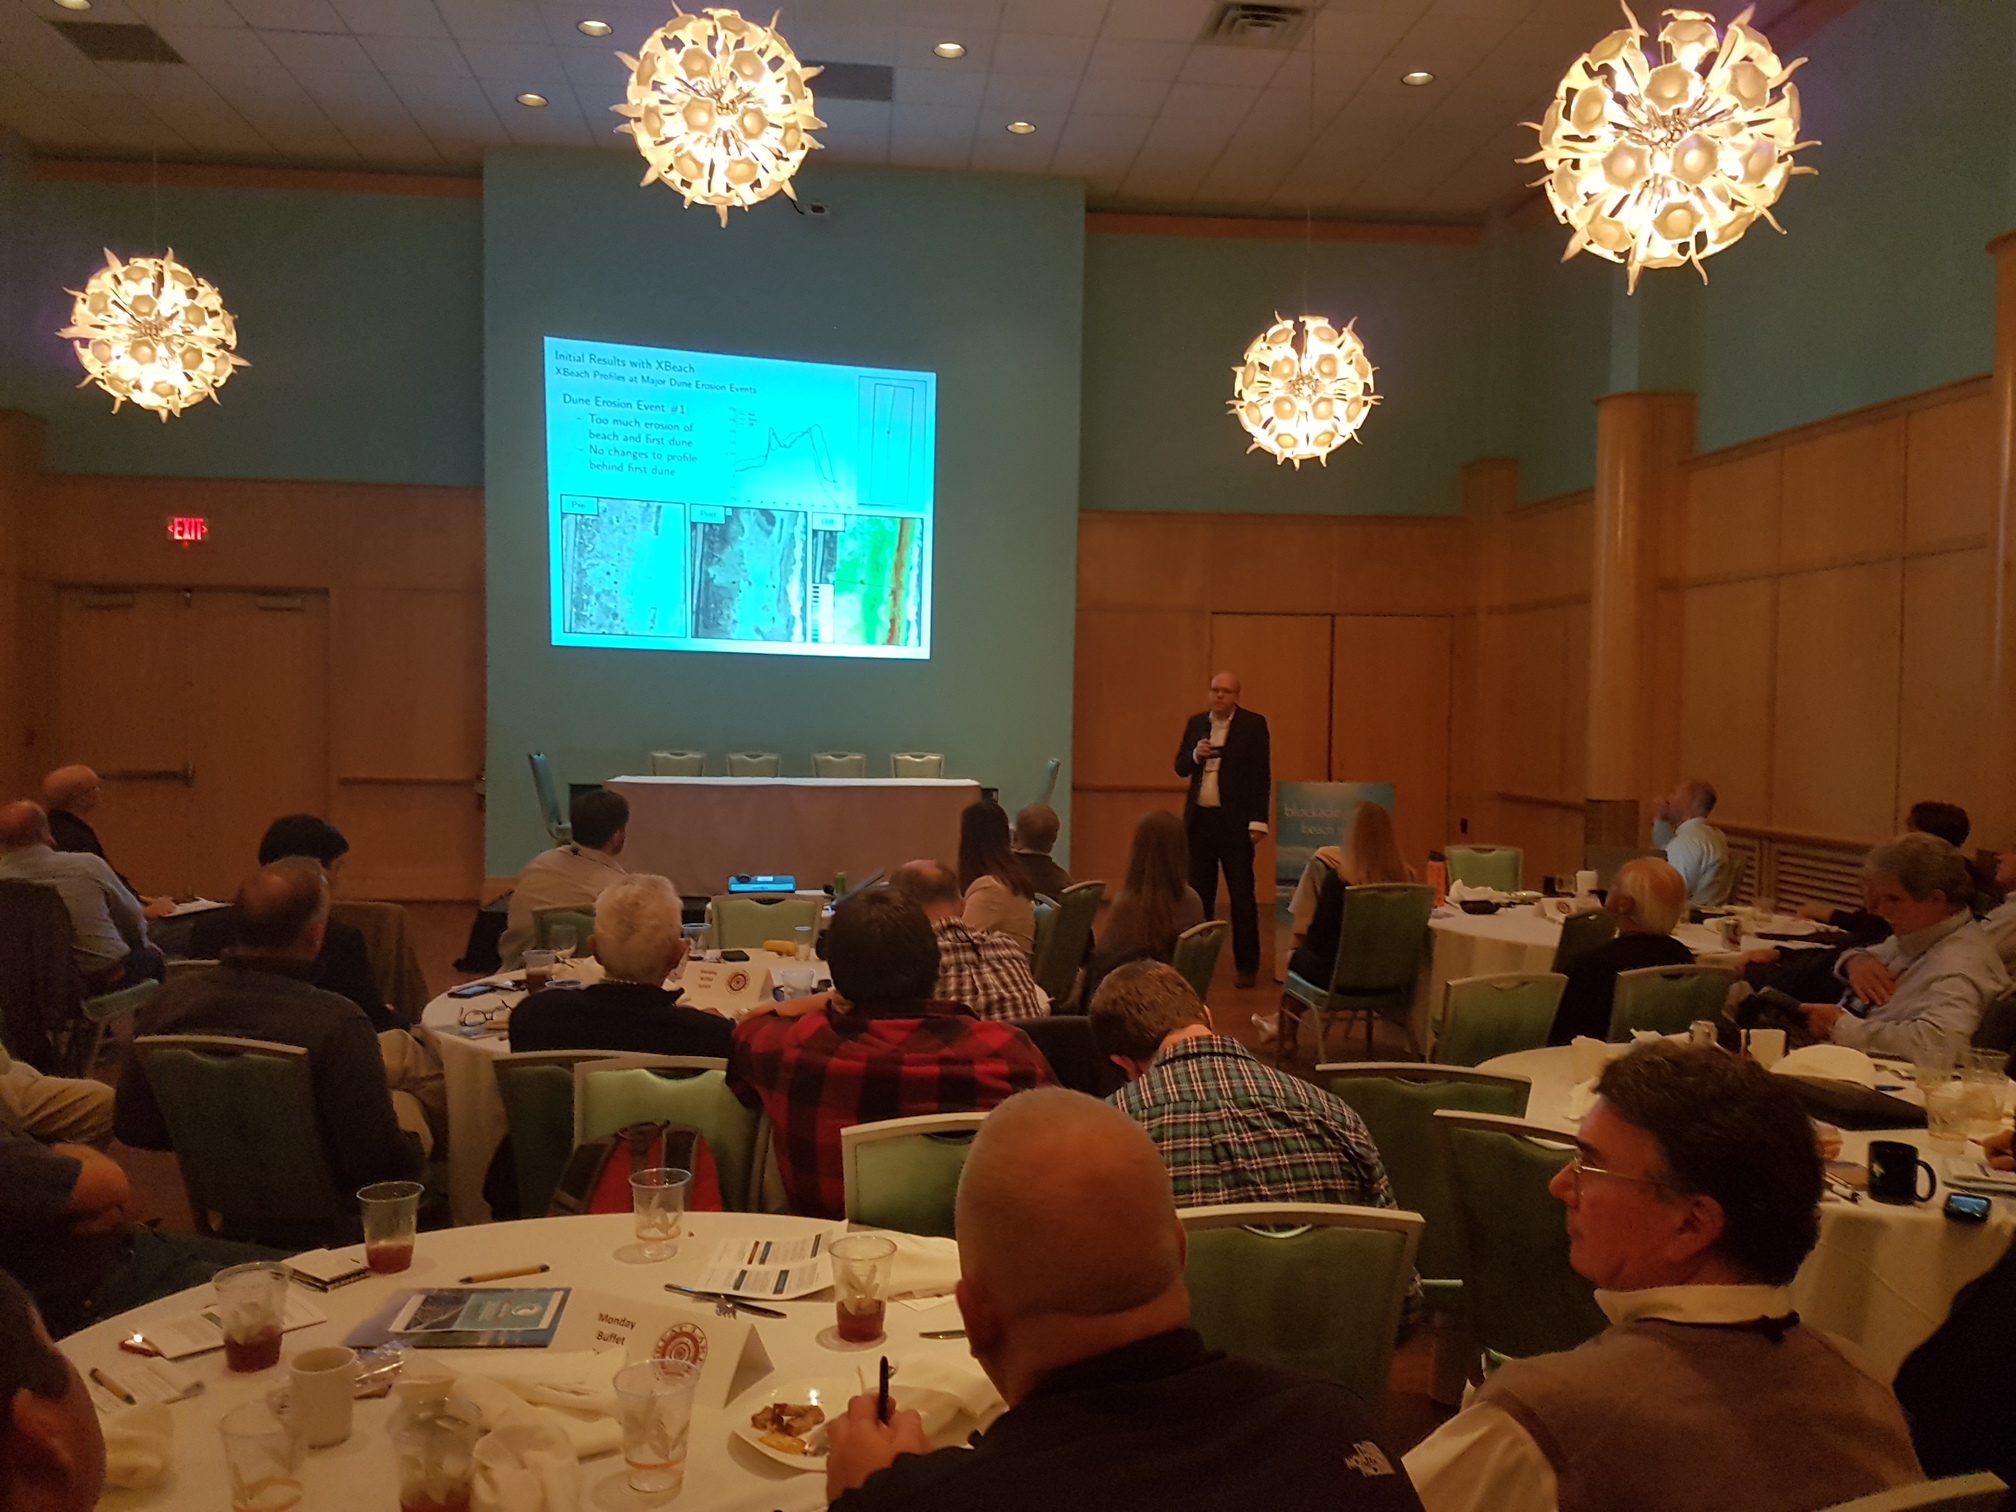 Casey Dietrich presenting at the NCBIWA Annual Conference on 14 November 2016.